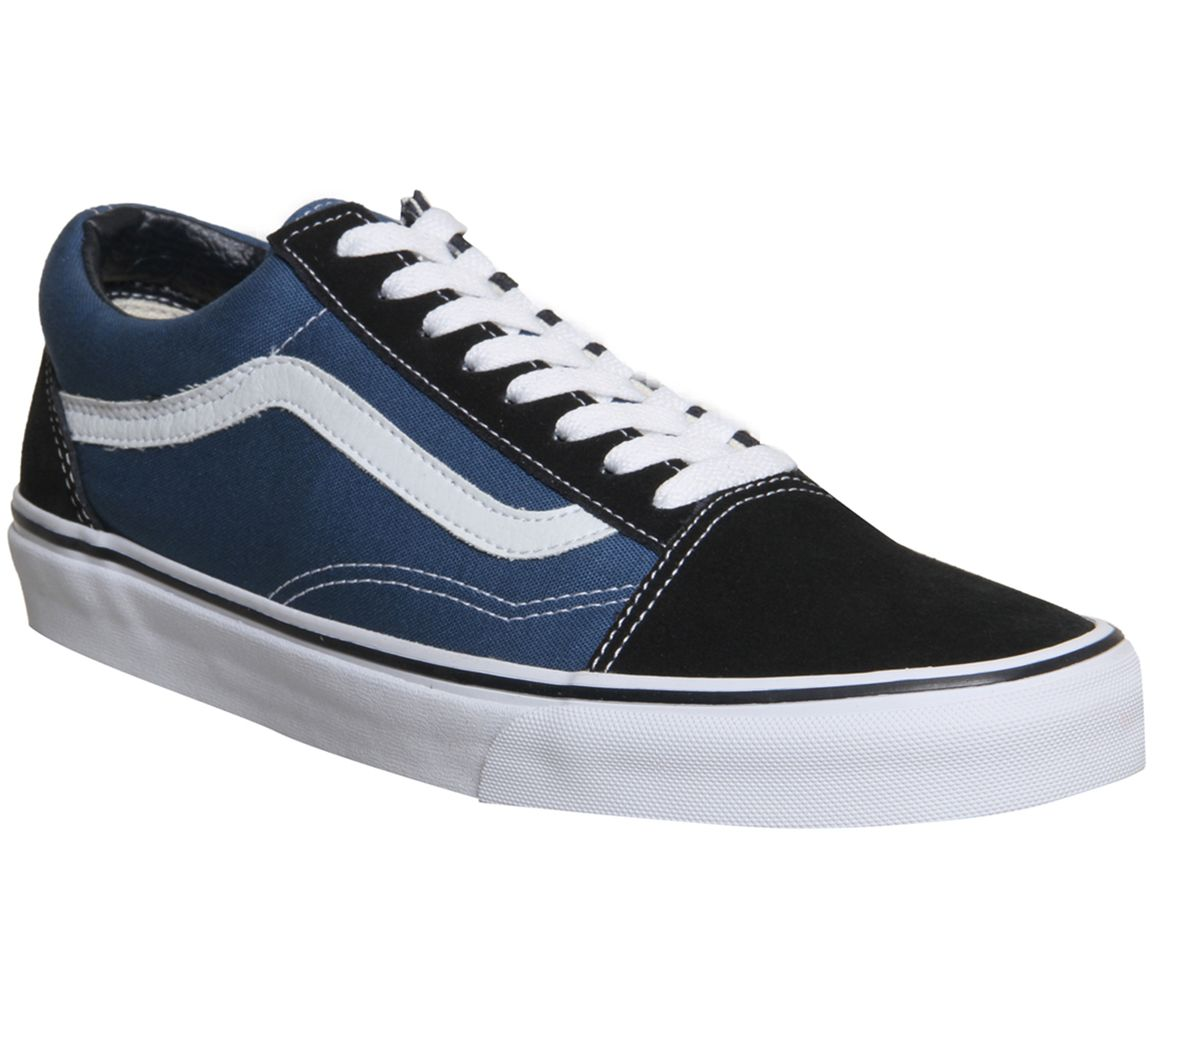 4da2ca0388c9 Vans Old Skool Navy - Unisex Sports